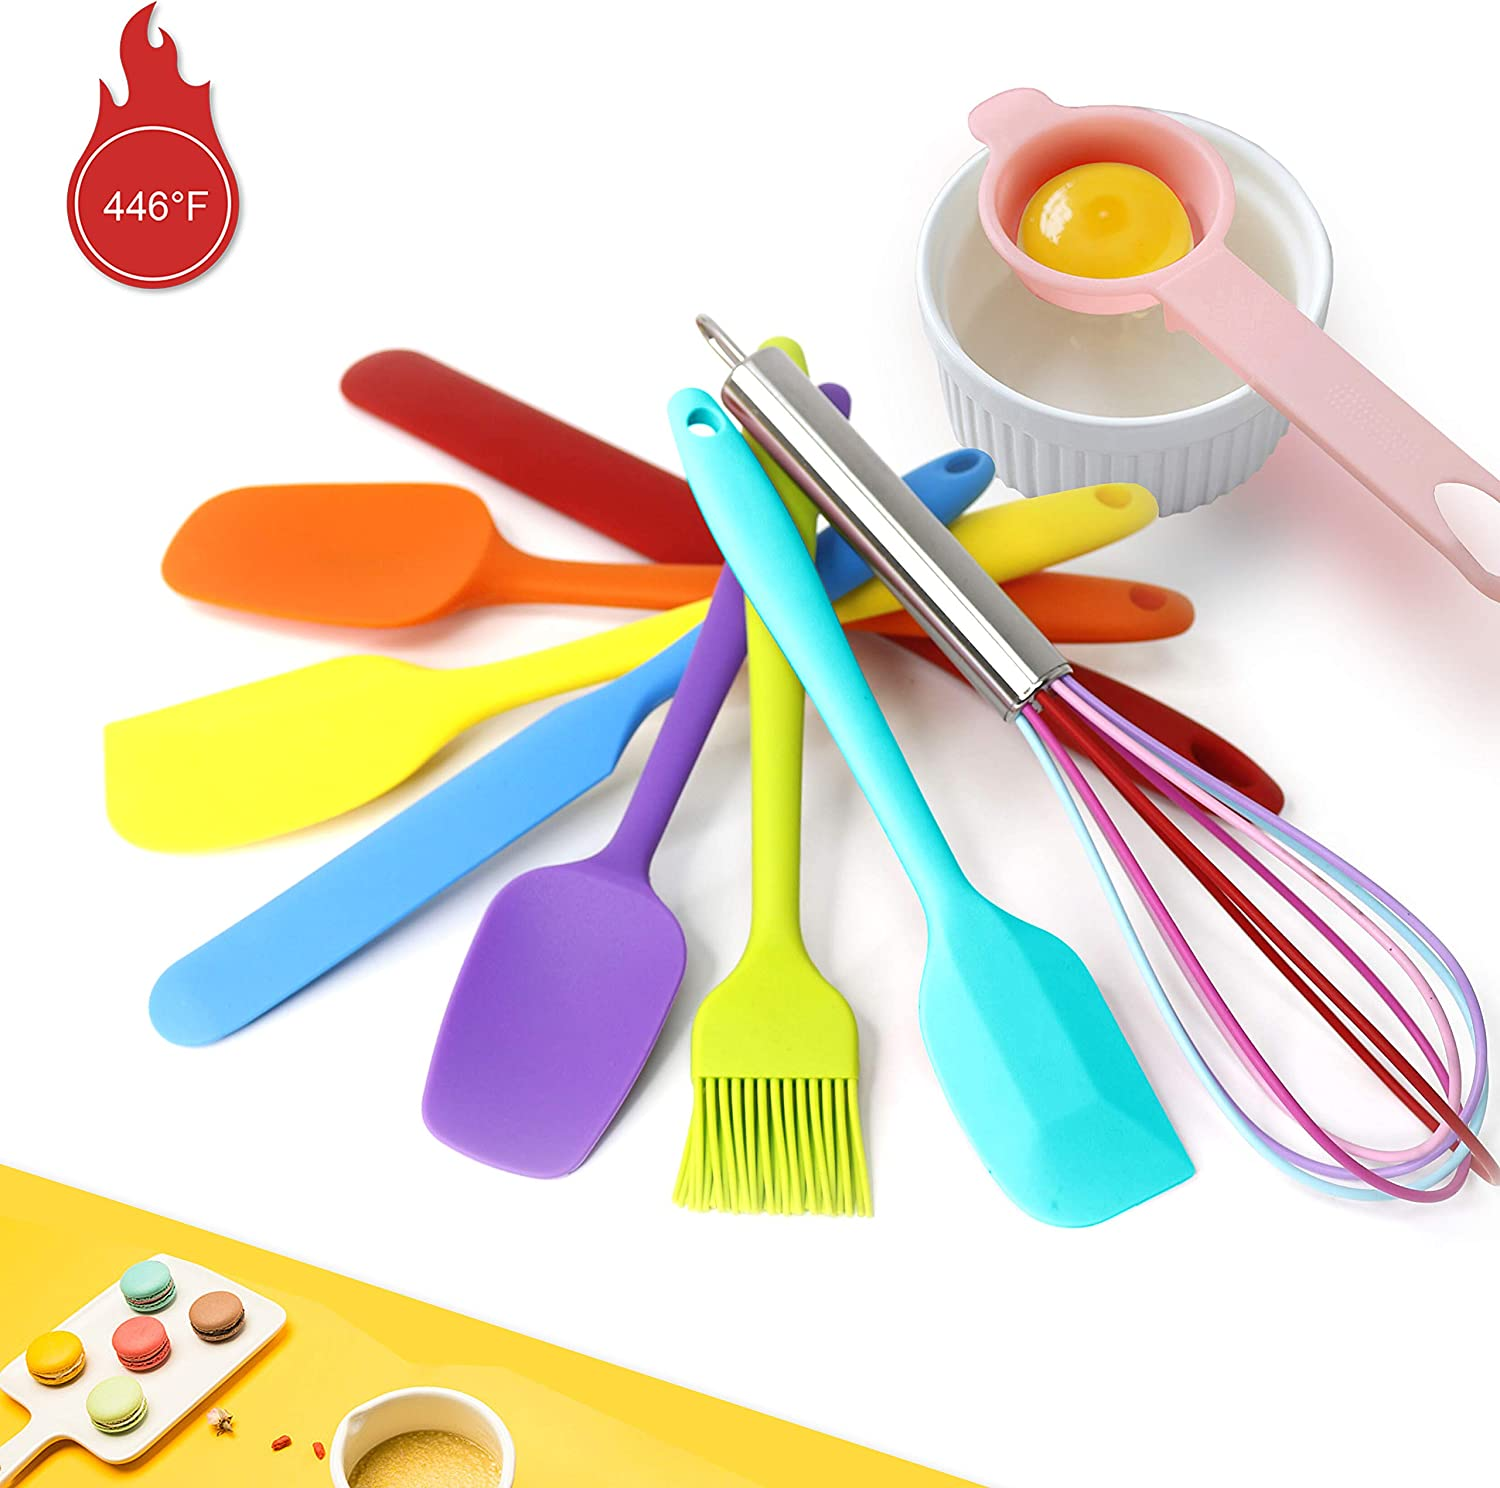 9 Piece Silicone Spatula Set - 446°F Heat Resistant Rubber Spatula .Kitchen Spatulas.Plastic Spatula. for Cooking, Baking, Mixing. Nonstick Cookware friendly. BPA-Free, Dishwasher Safe (Mixed Colors): Kitchen & Dining